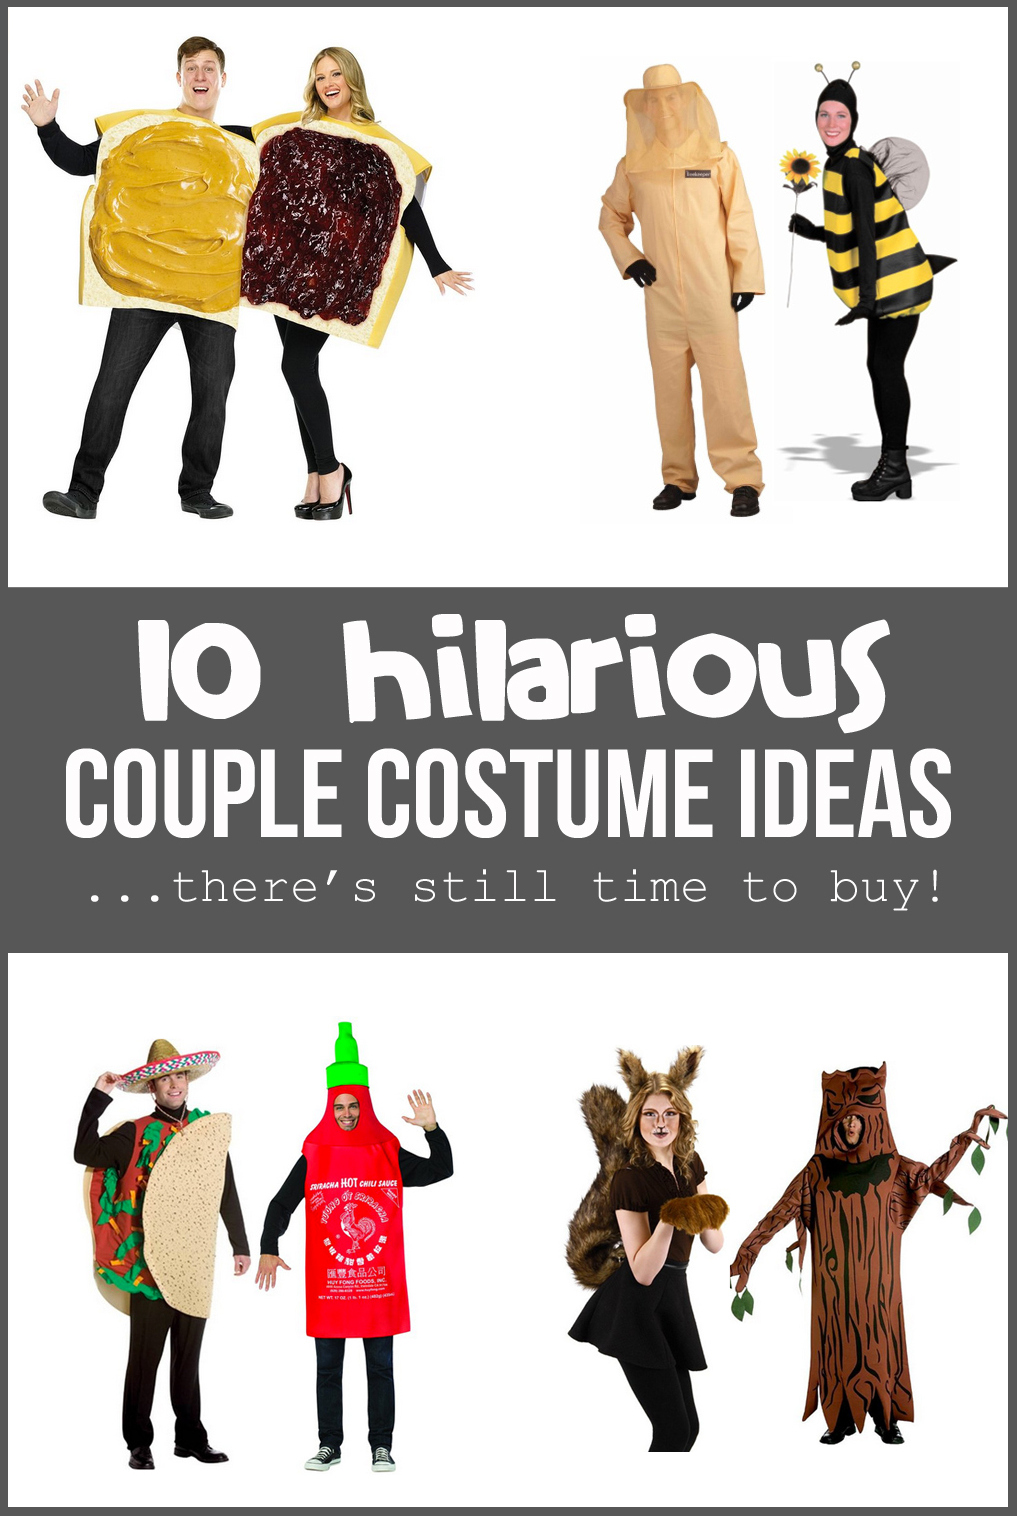 10 Hilarious COUPLE COSTUME IDEAS….there's still time to BUY!